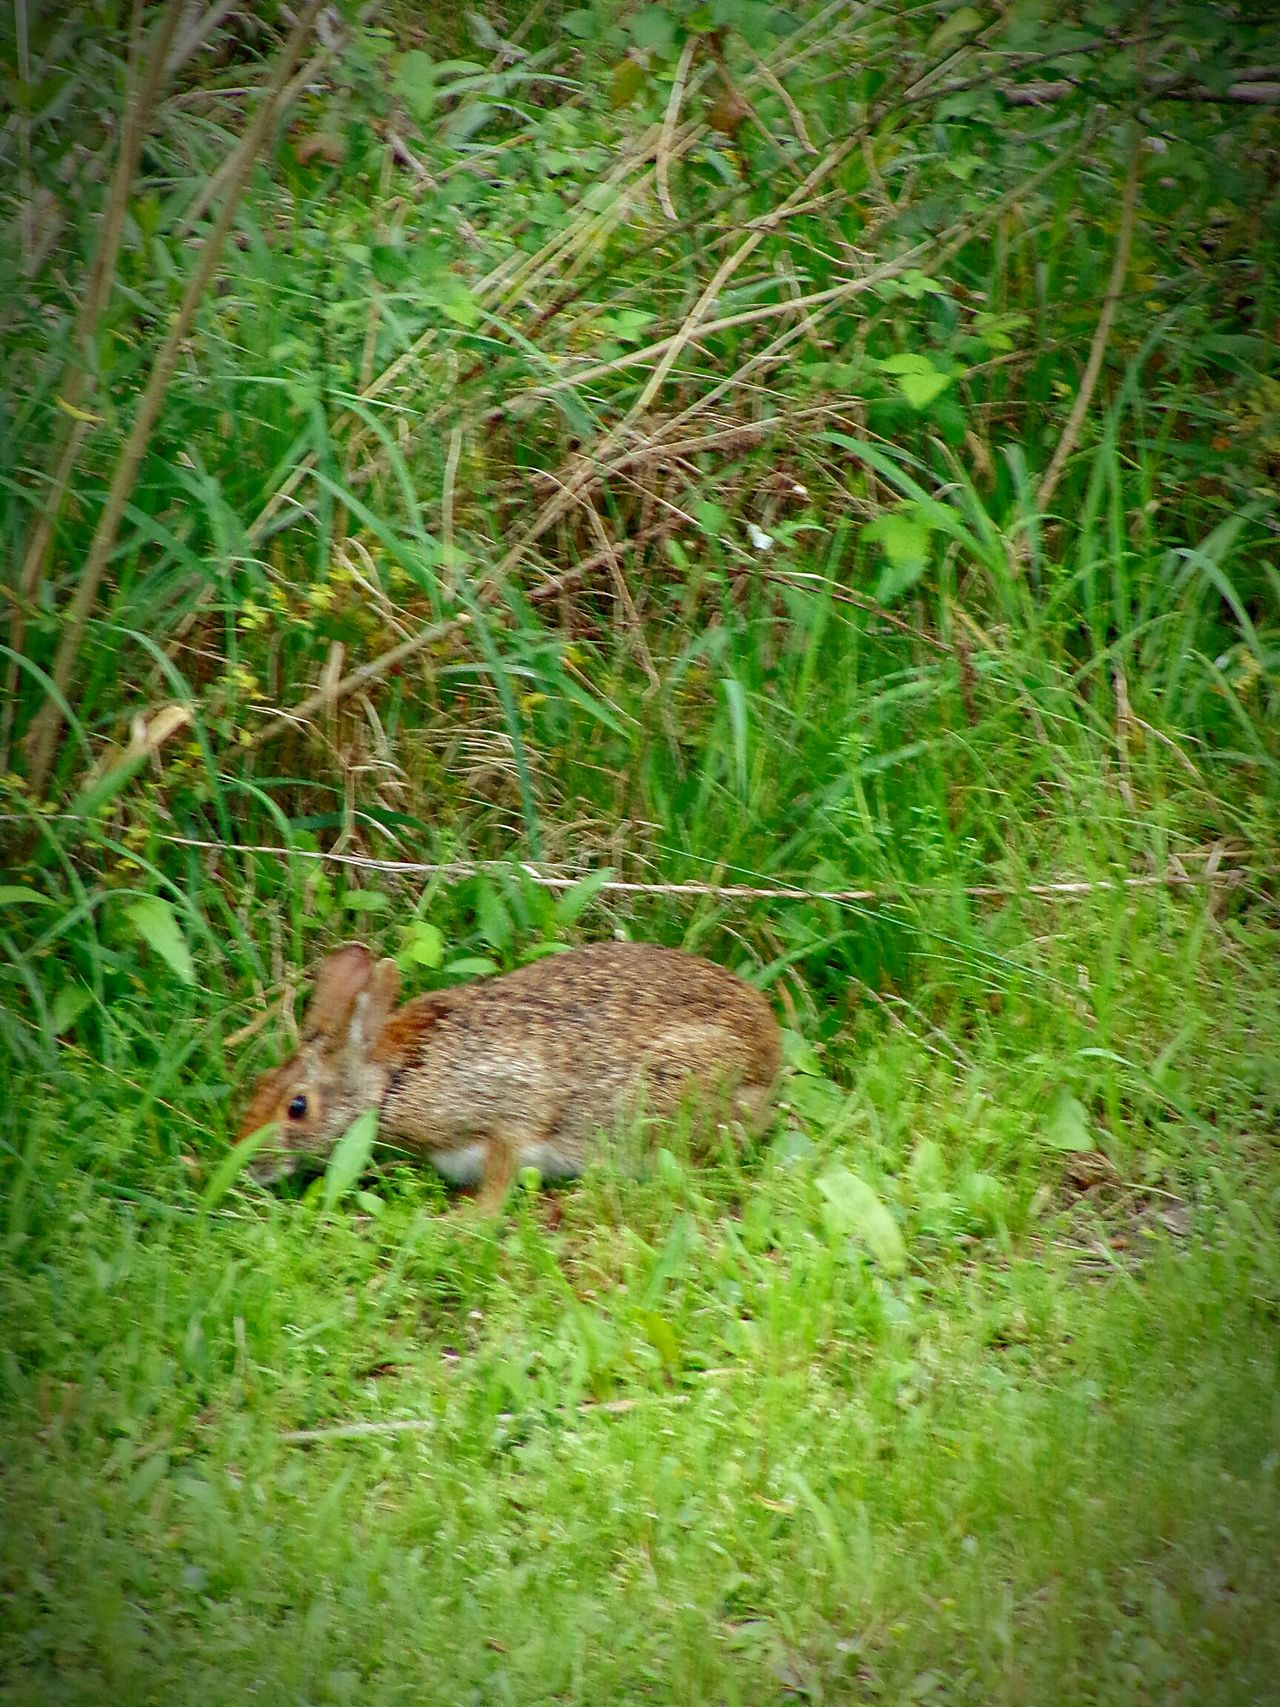 Petercottontail Animals In The Wild Grass Green Color One Animal Nature Animal Wildlife No People Outdoors Day Beautyinnature  Tranquil Scene Tranquility Eyeemnaturelover Nature I💗Rabbits Springtime Full Length